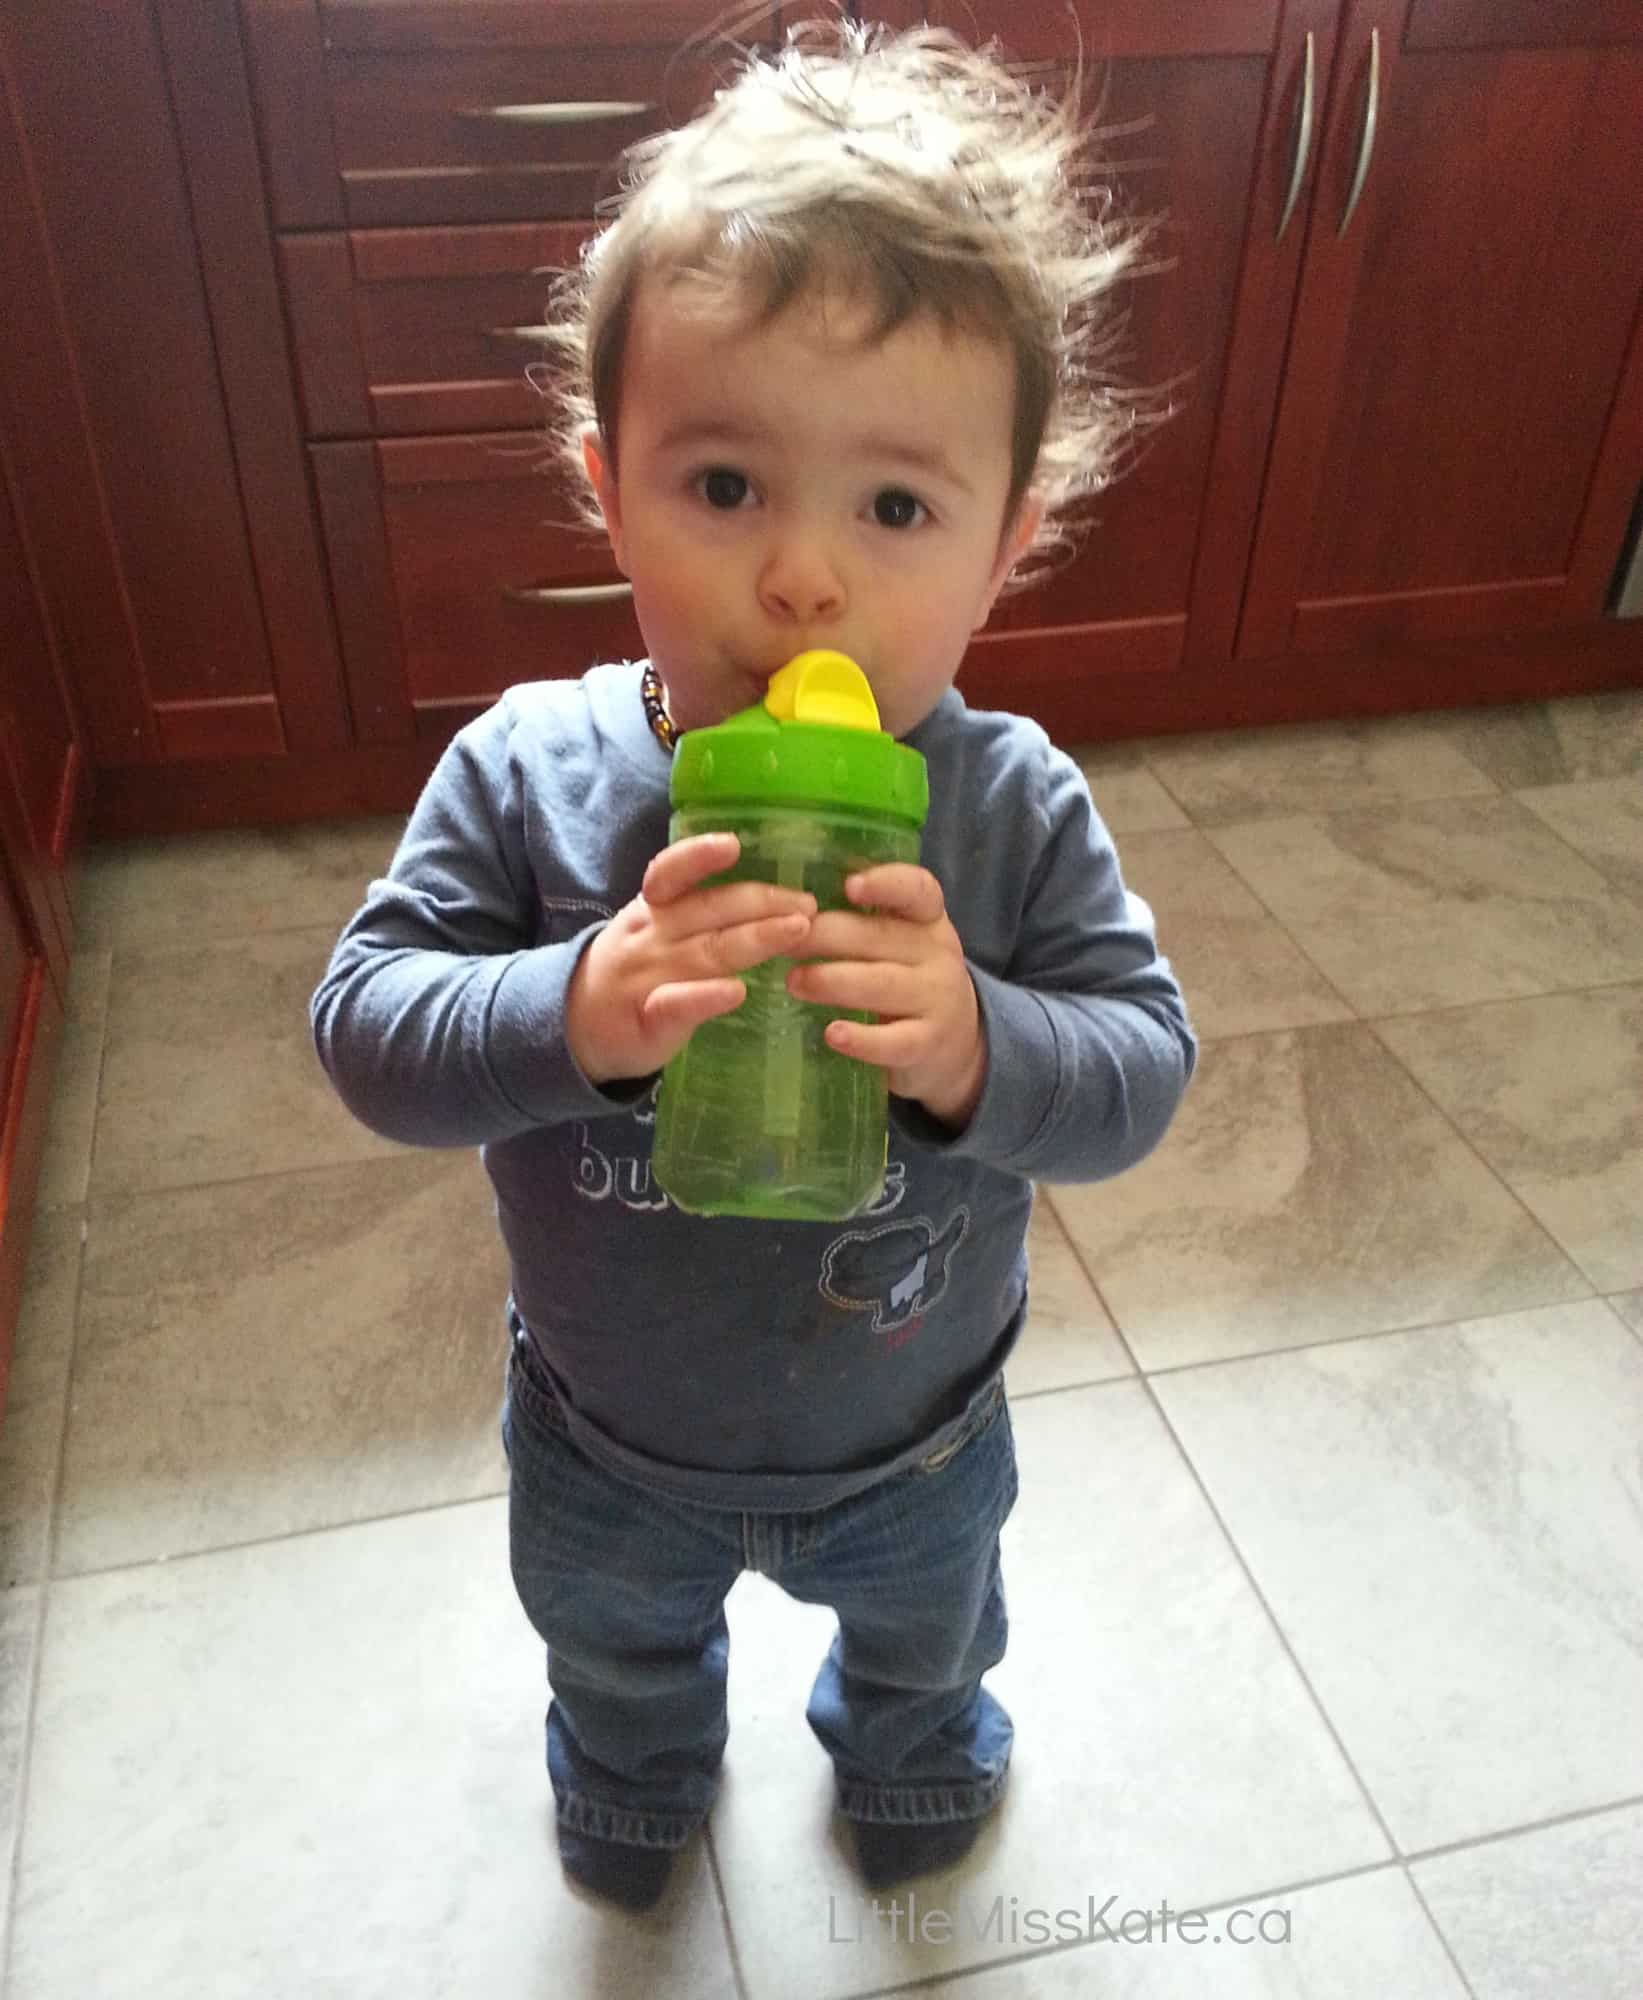 Playtex straw sippy cup review